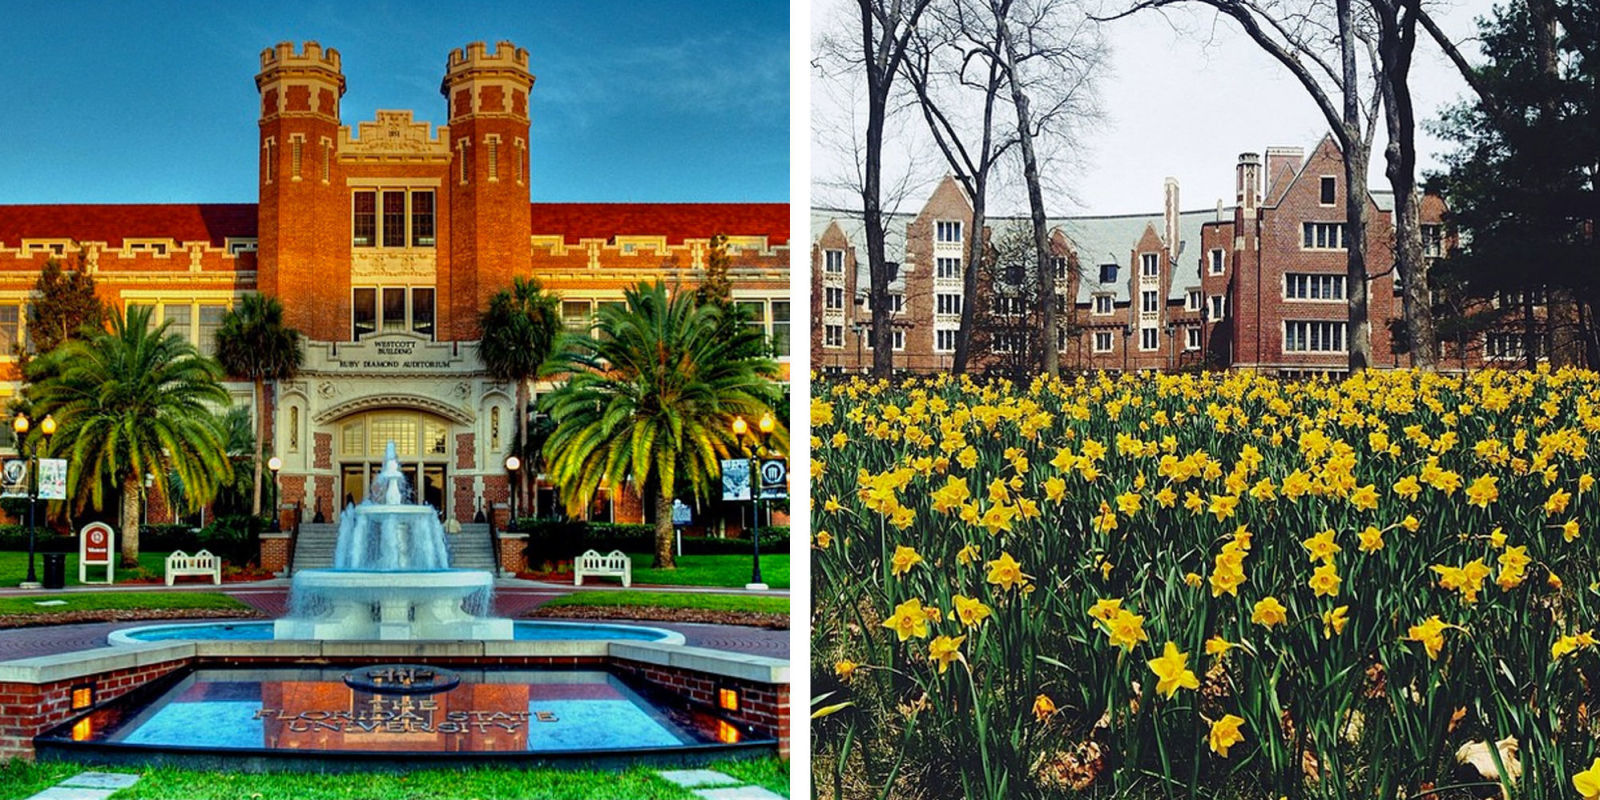 18 Pictures Of The Most Beautiful College Campuses In America